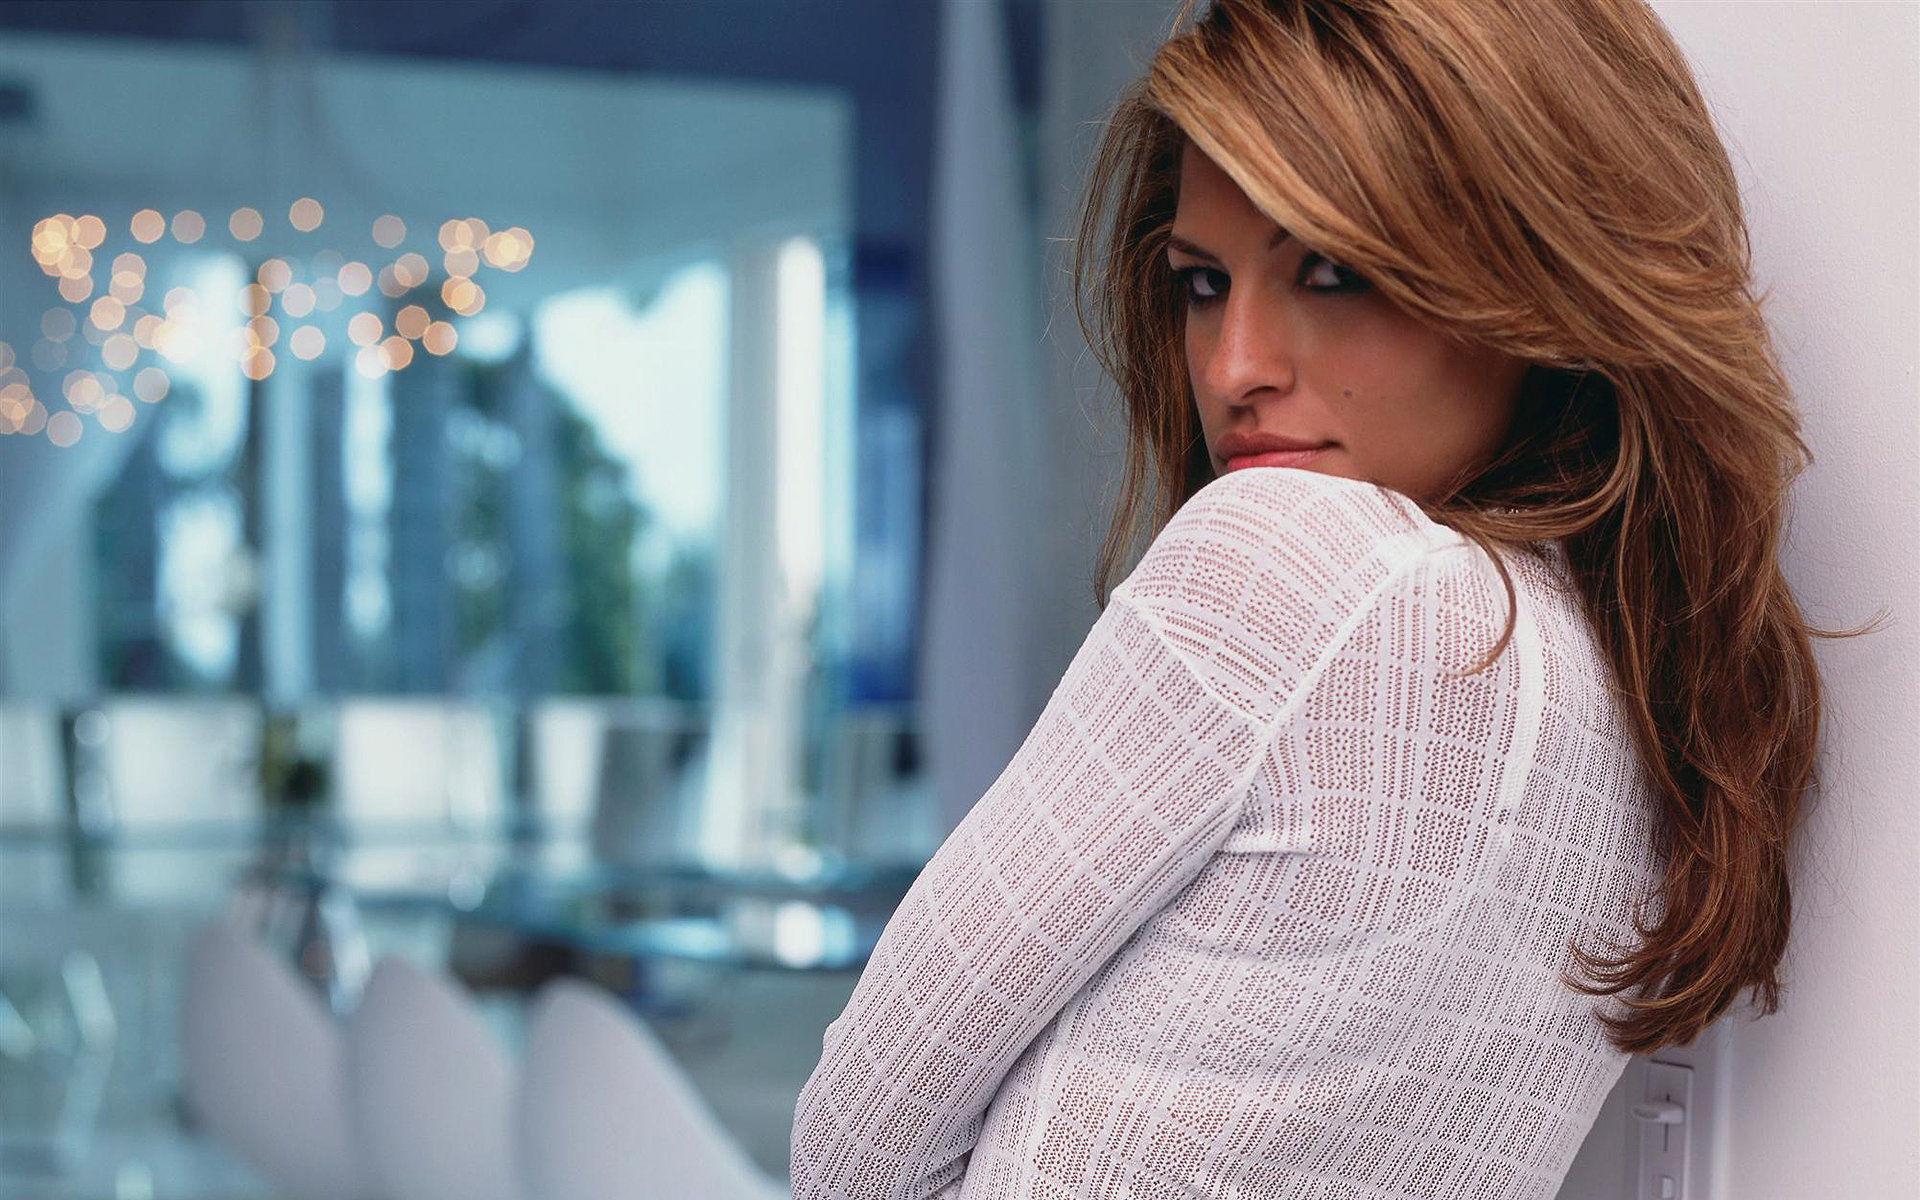 Eva Mendes HD Desktop Wallpaper for K Ultra HD TV Wide